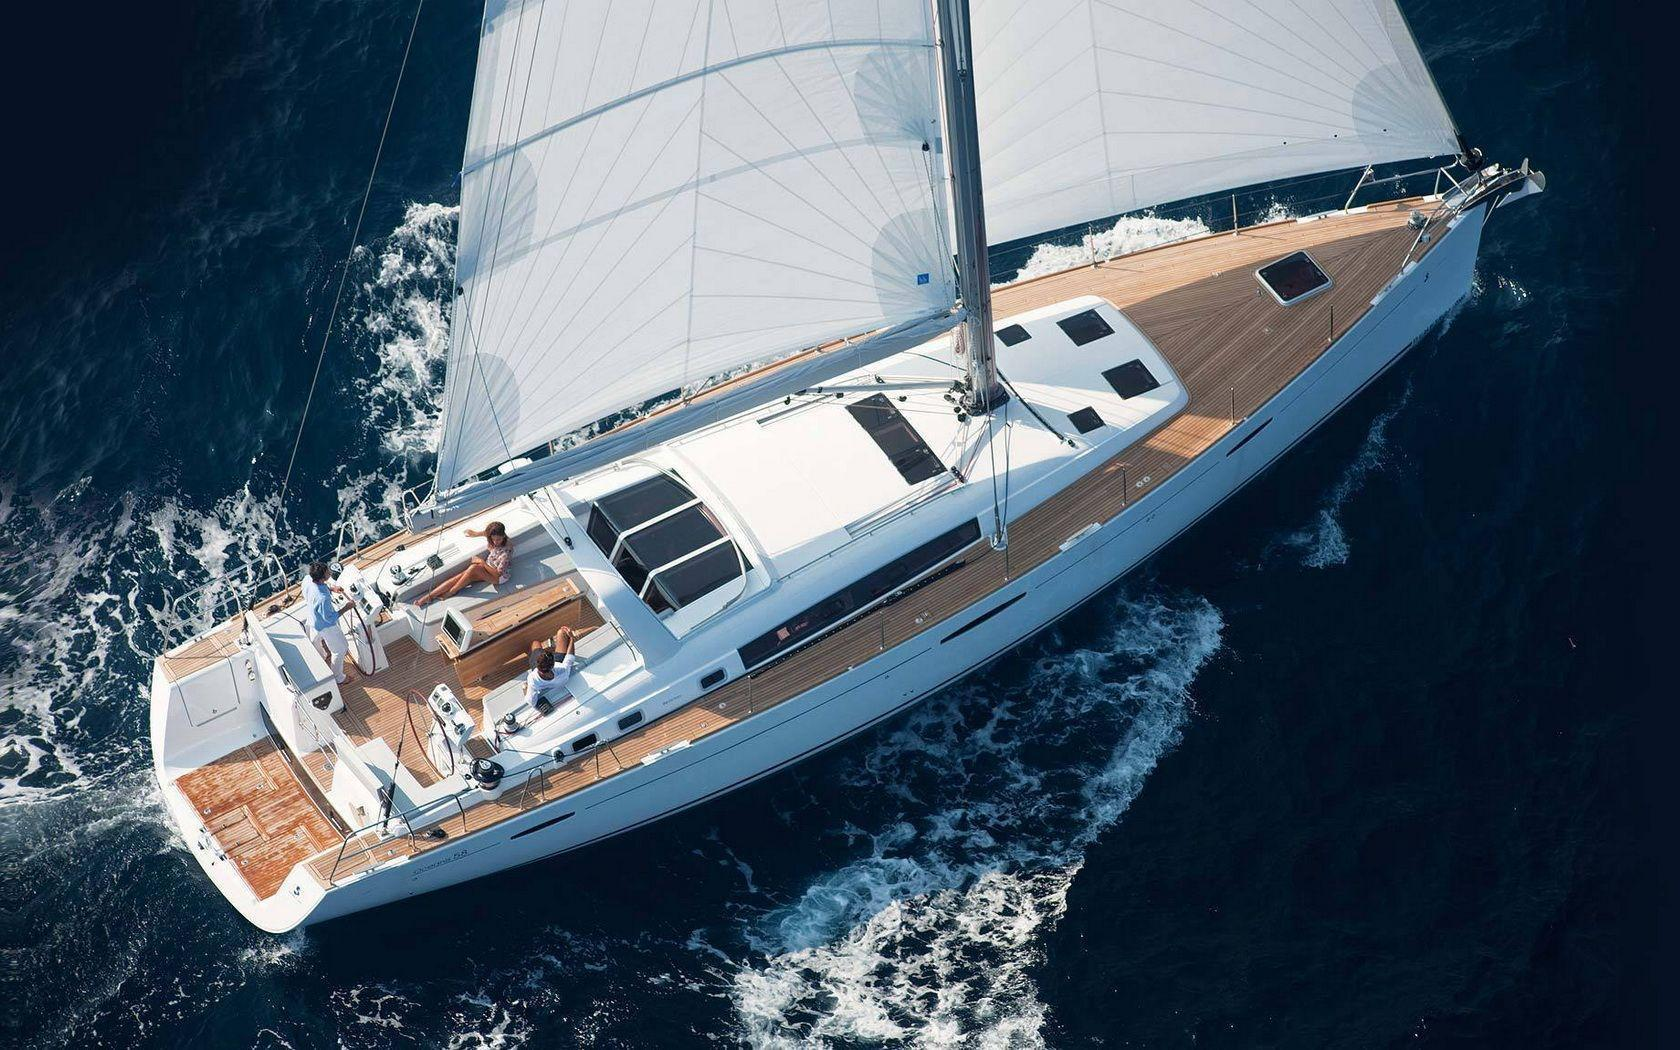 Sailing Yachts wallpapers – wallpapers free download